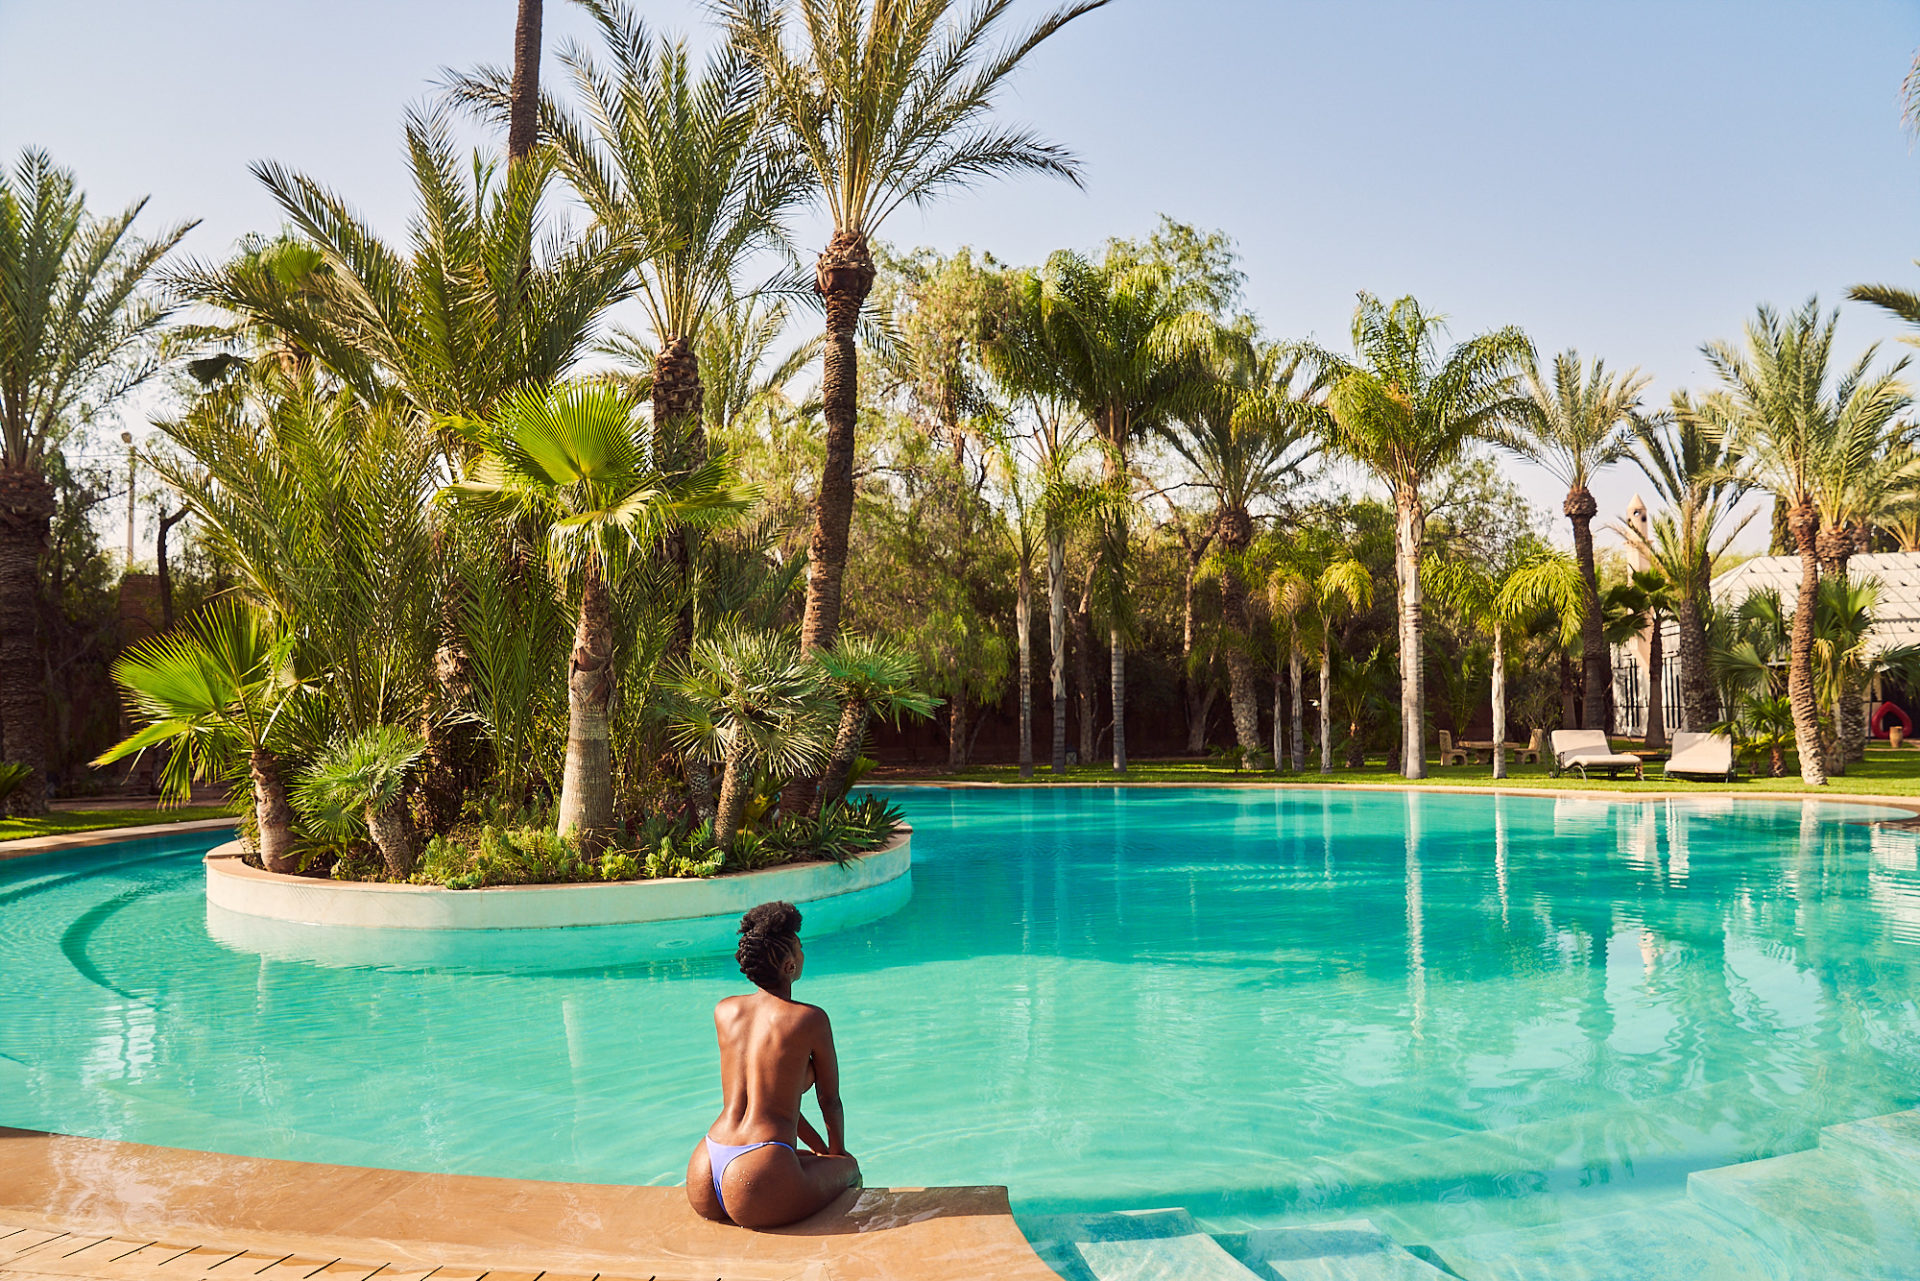 Destination Marrakech: Stop at Lodge K